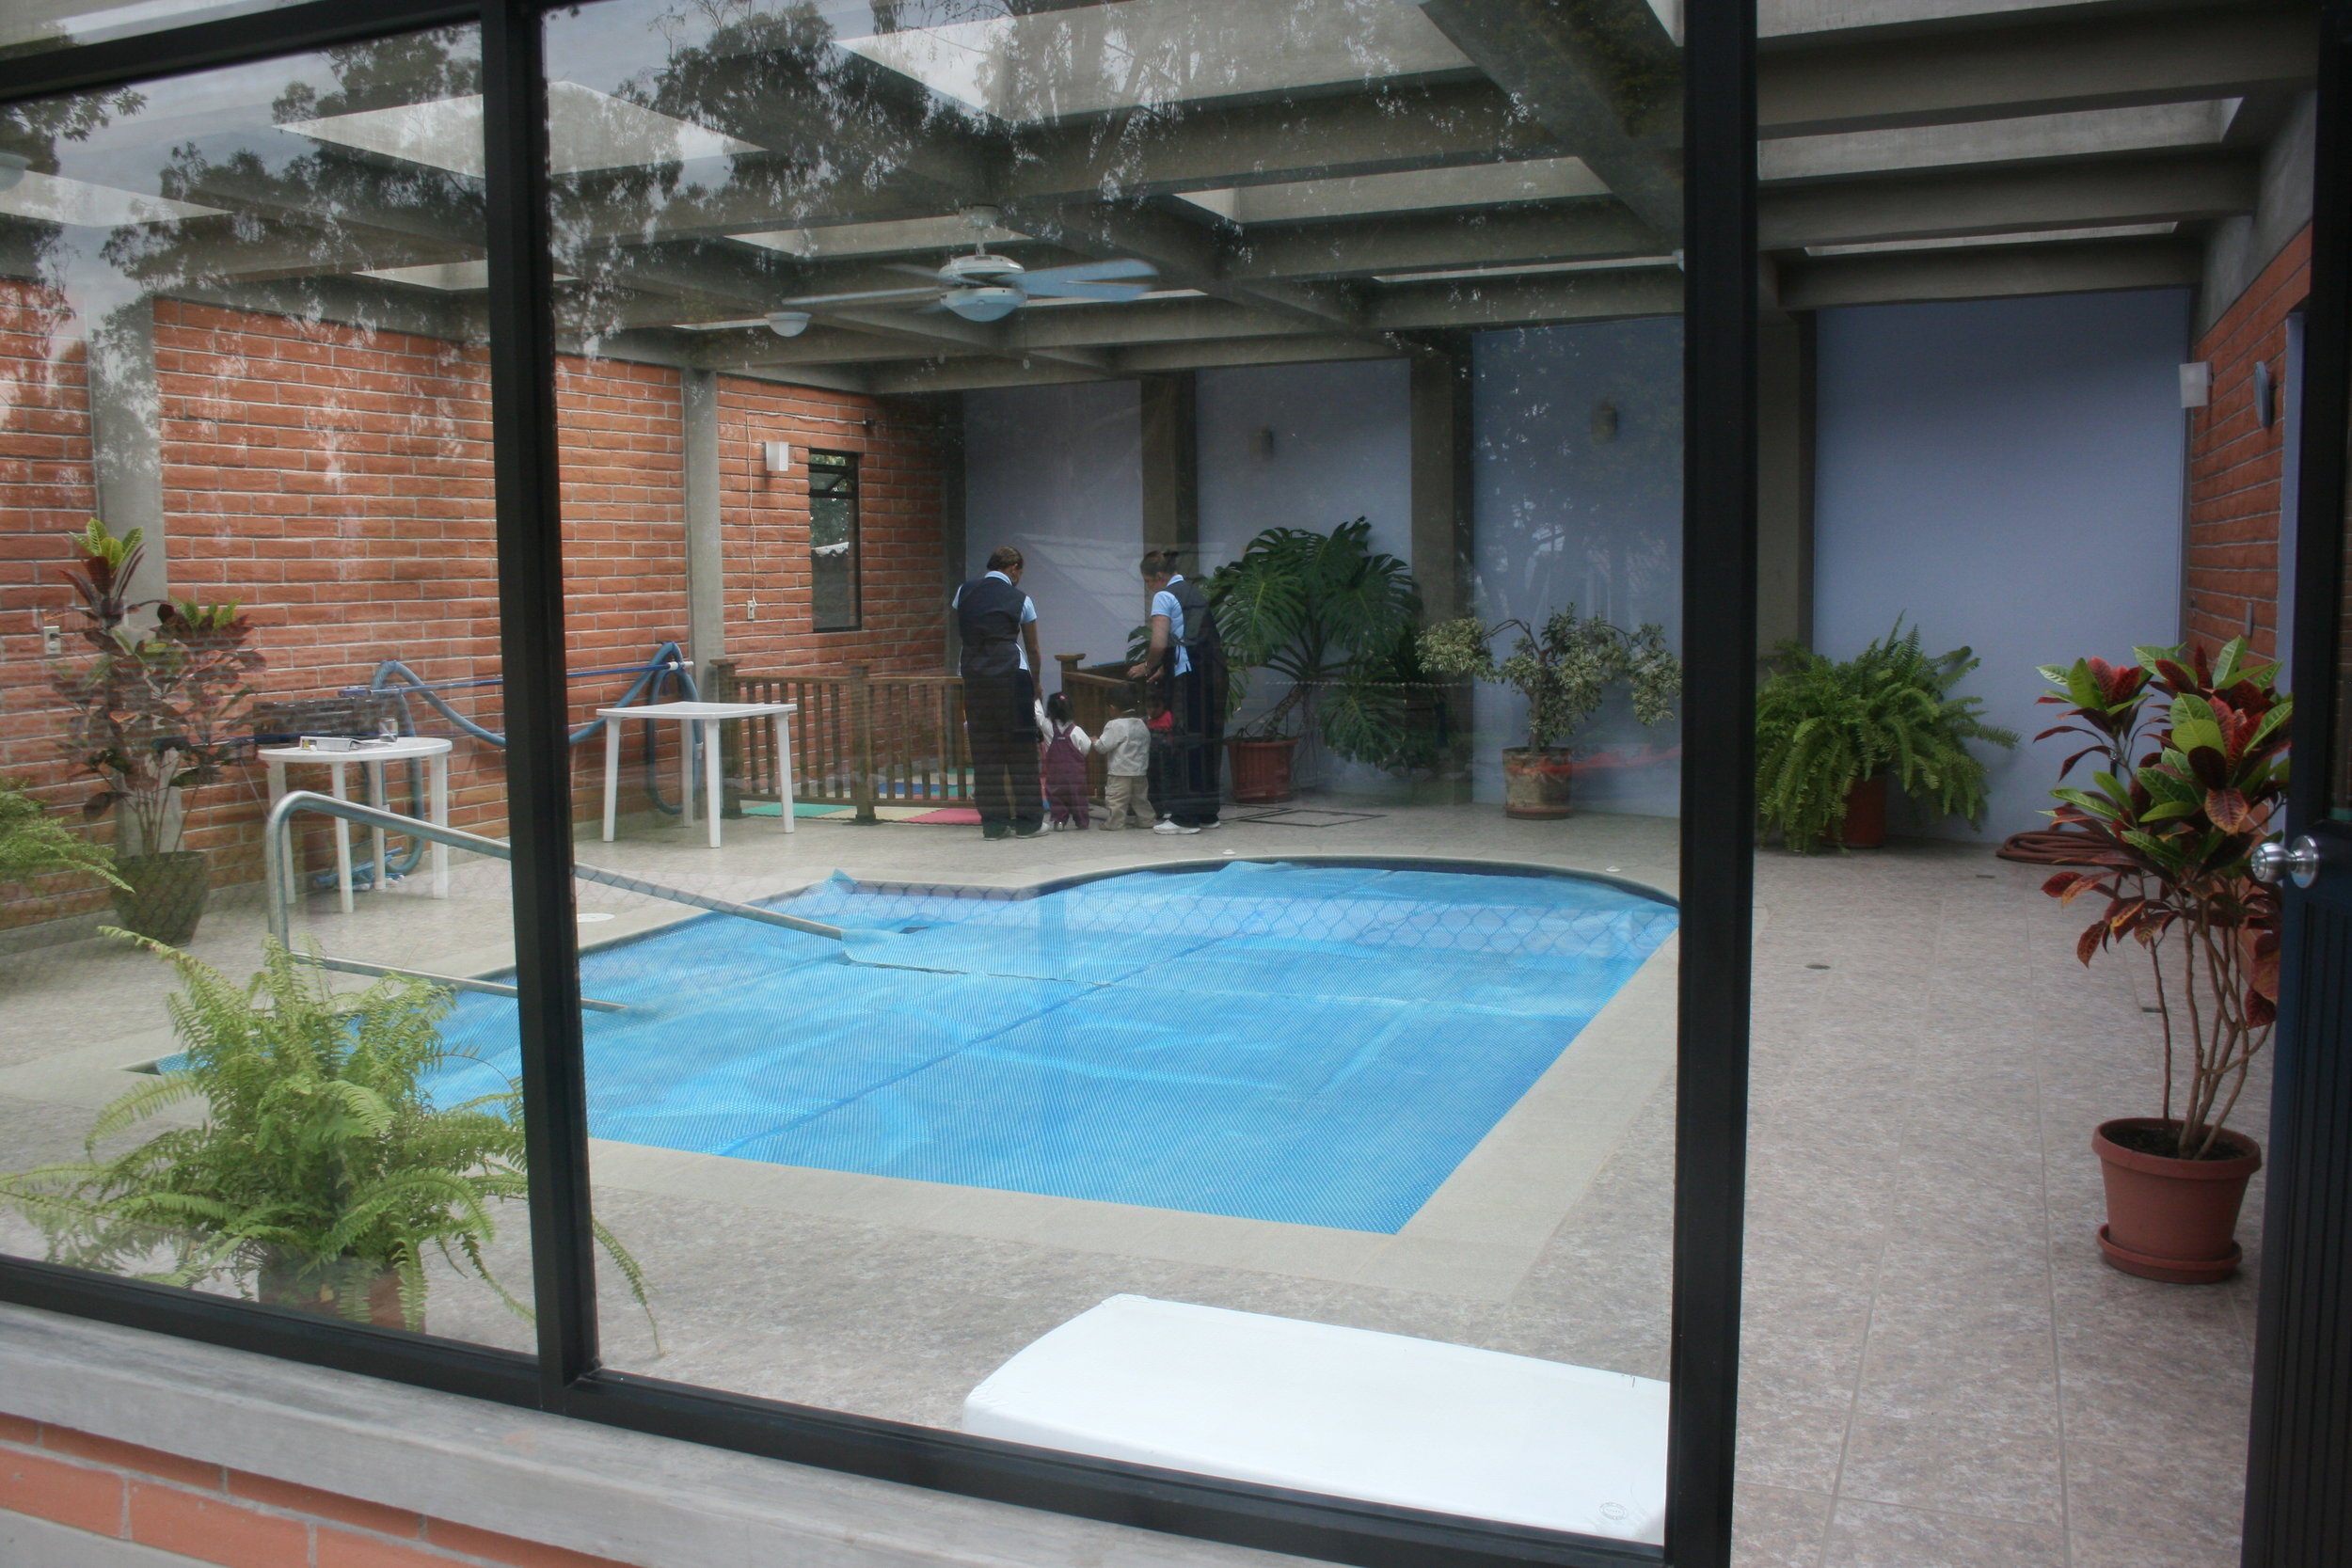 Therapy pool building in Quito, Ecuador